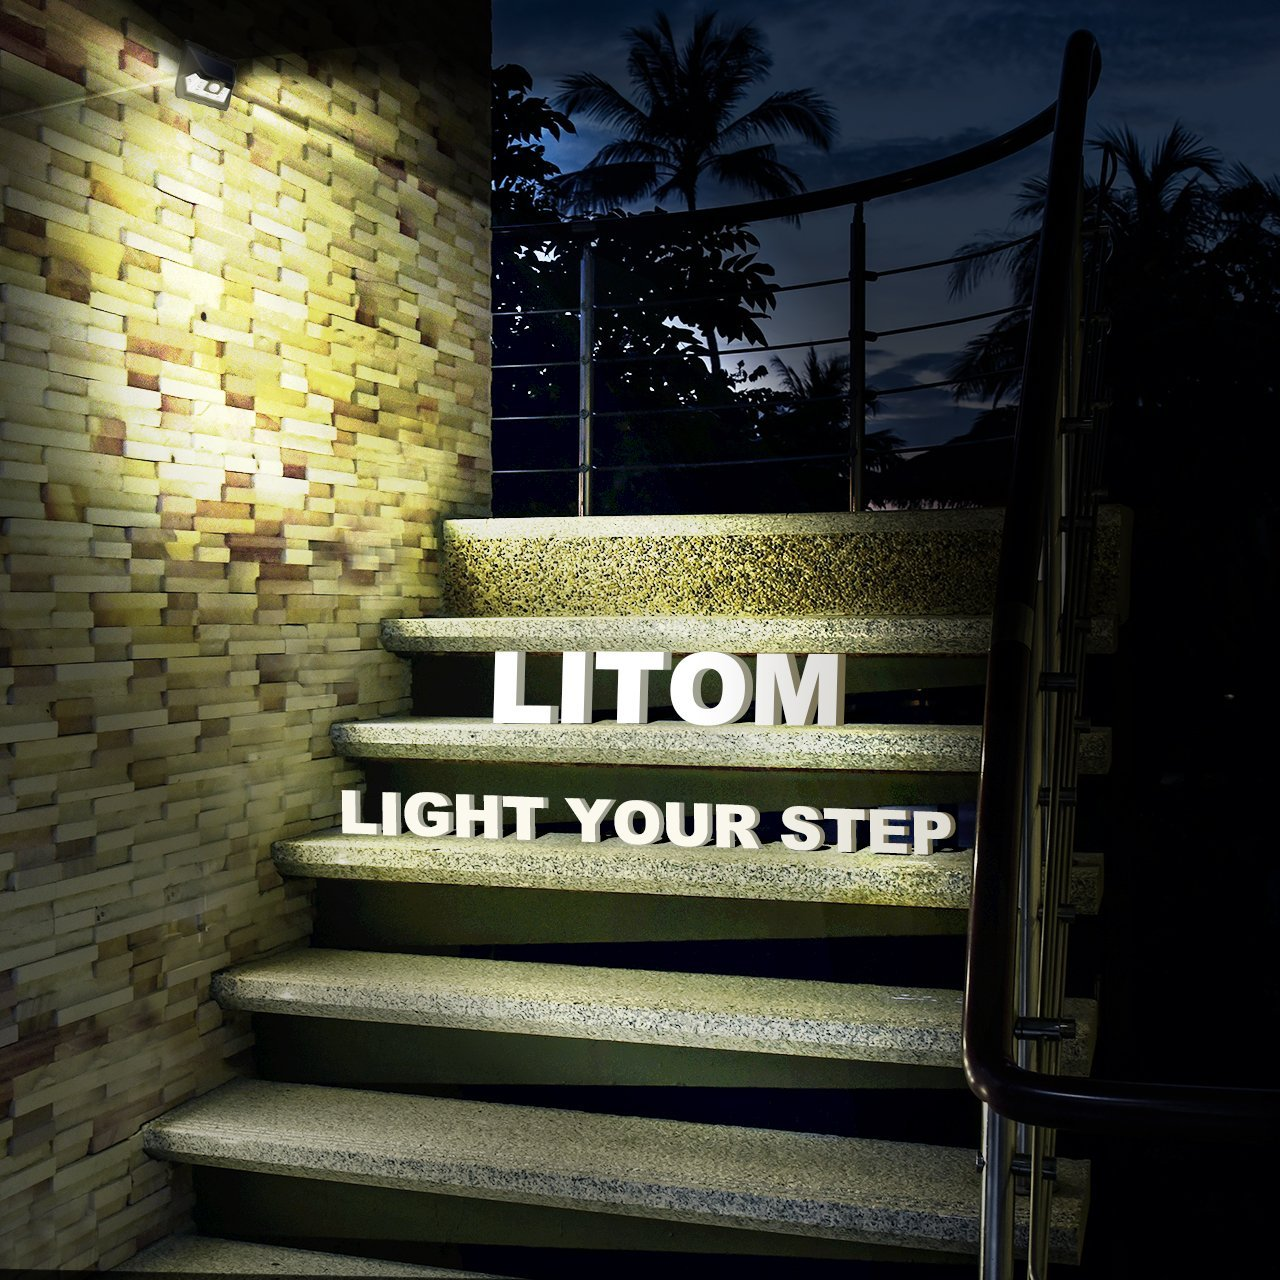 LITOM Solar Lights Outdoor, Wireless LED Solar Motion Sensor Lights with Wide Angle, IP65 Waterproof Security Lights for Front Door Yard Garage Deck Porch Shed Walkway Fence (4 Pack) by Litom (Image #7)